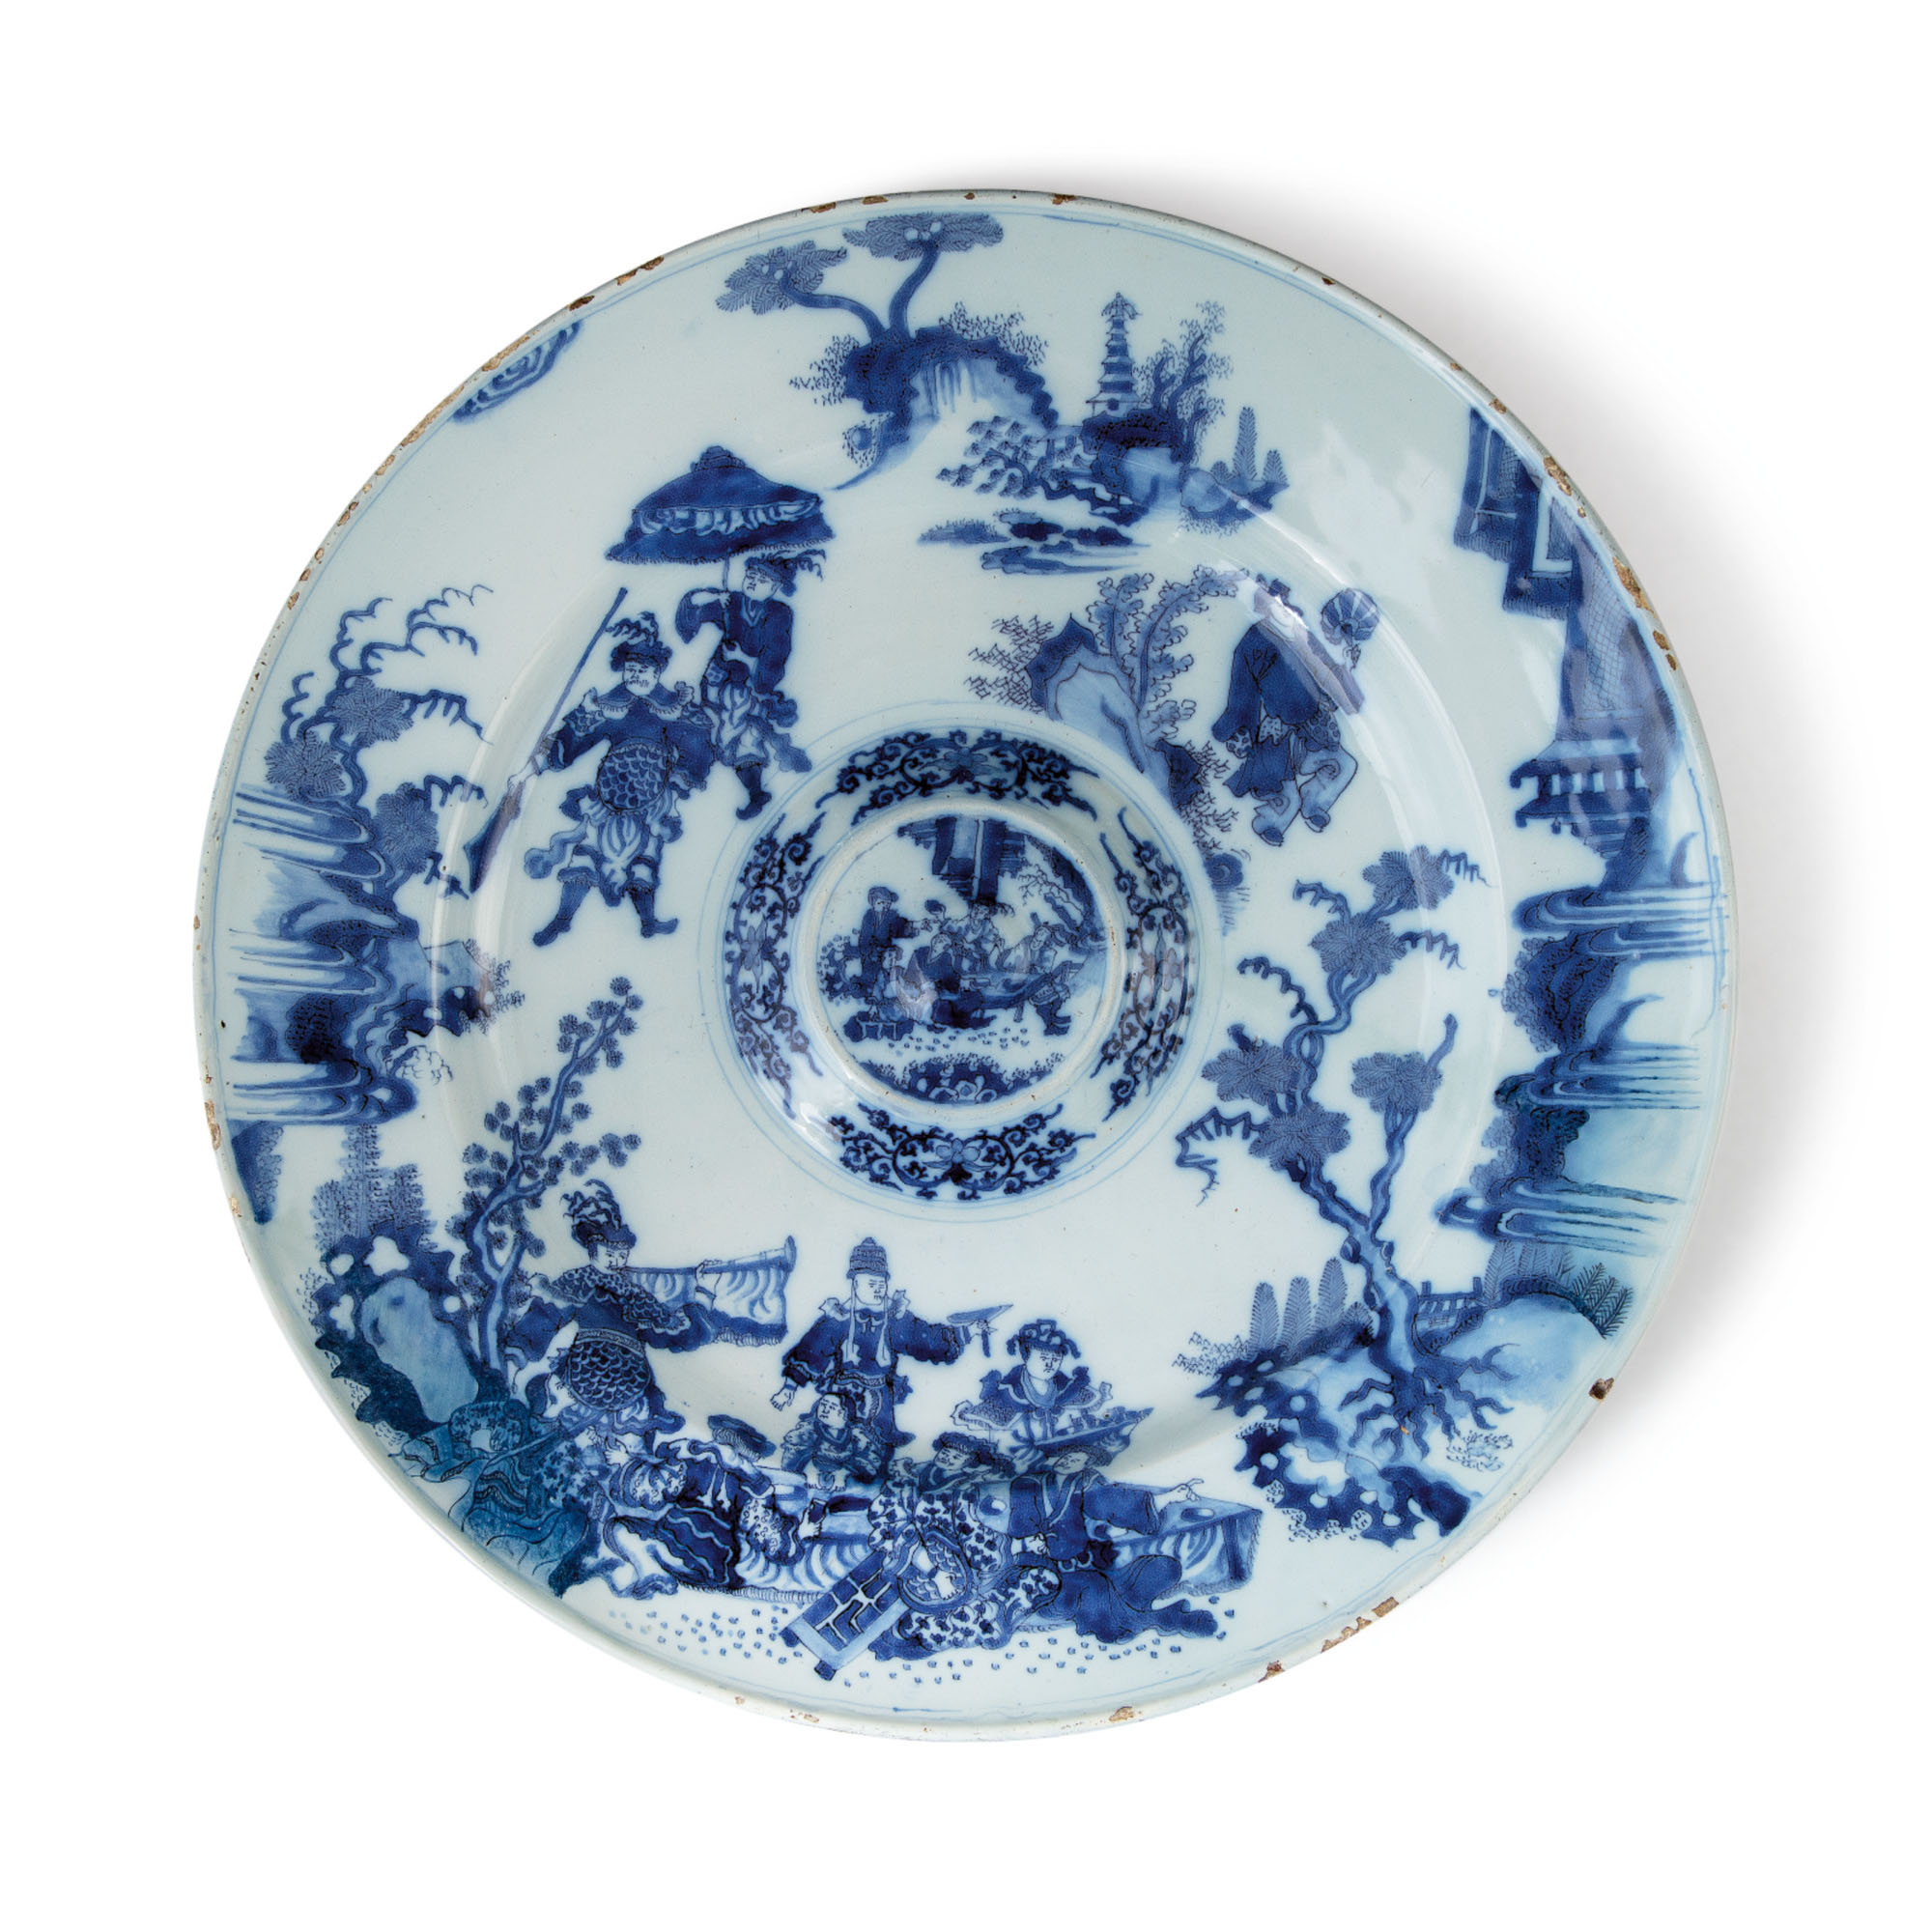 A DUTCH DELFT BLUE AND WHITE LARGE CHARGER, CIRCA 1680-1700